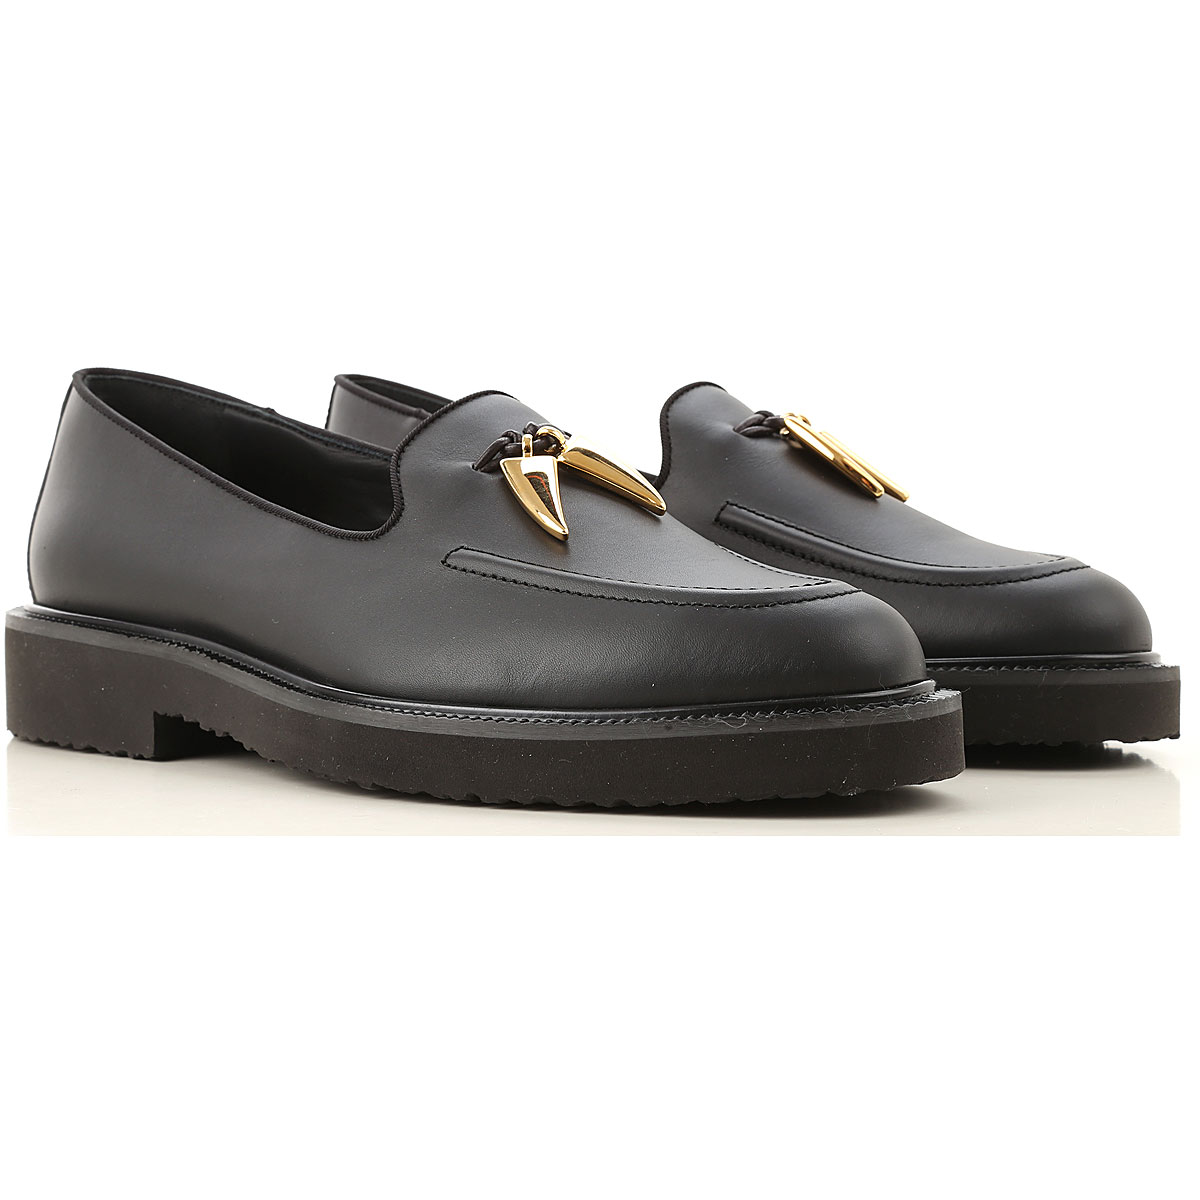 Giuseppe Zanotti Design Loafers for Men On Sale in Outlet, Black, Leather, 2019, 7.5 8